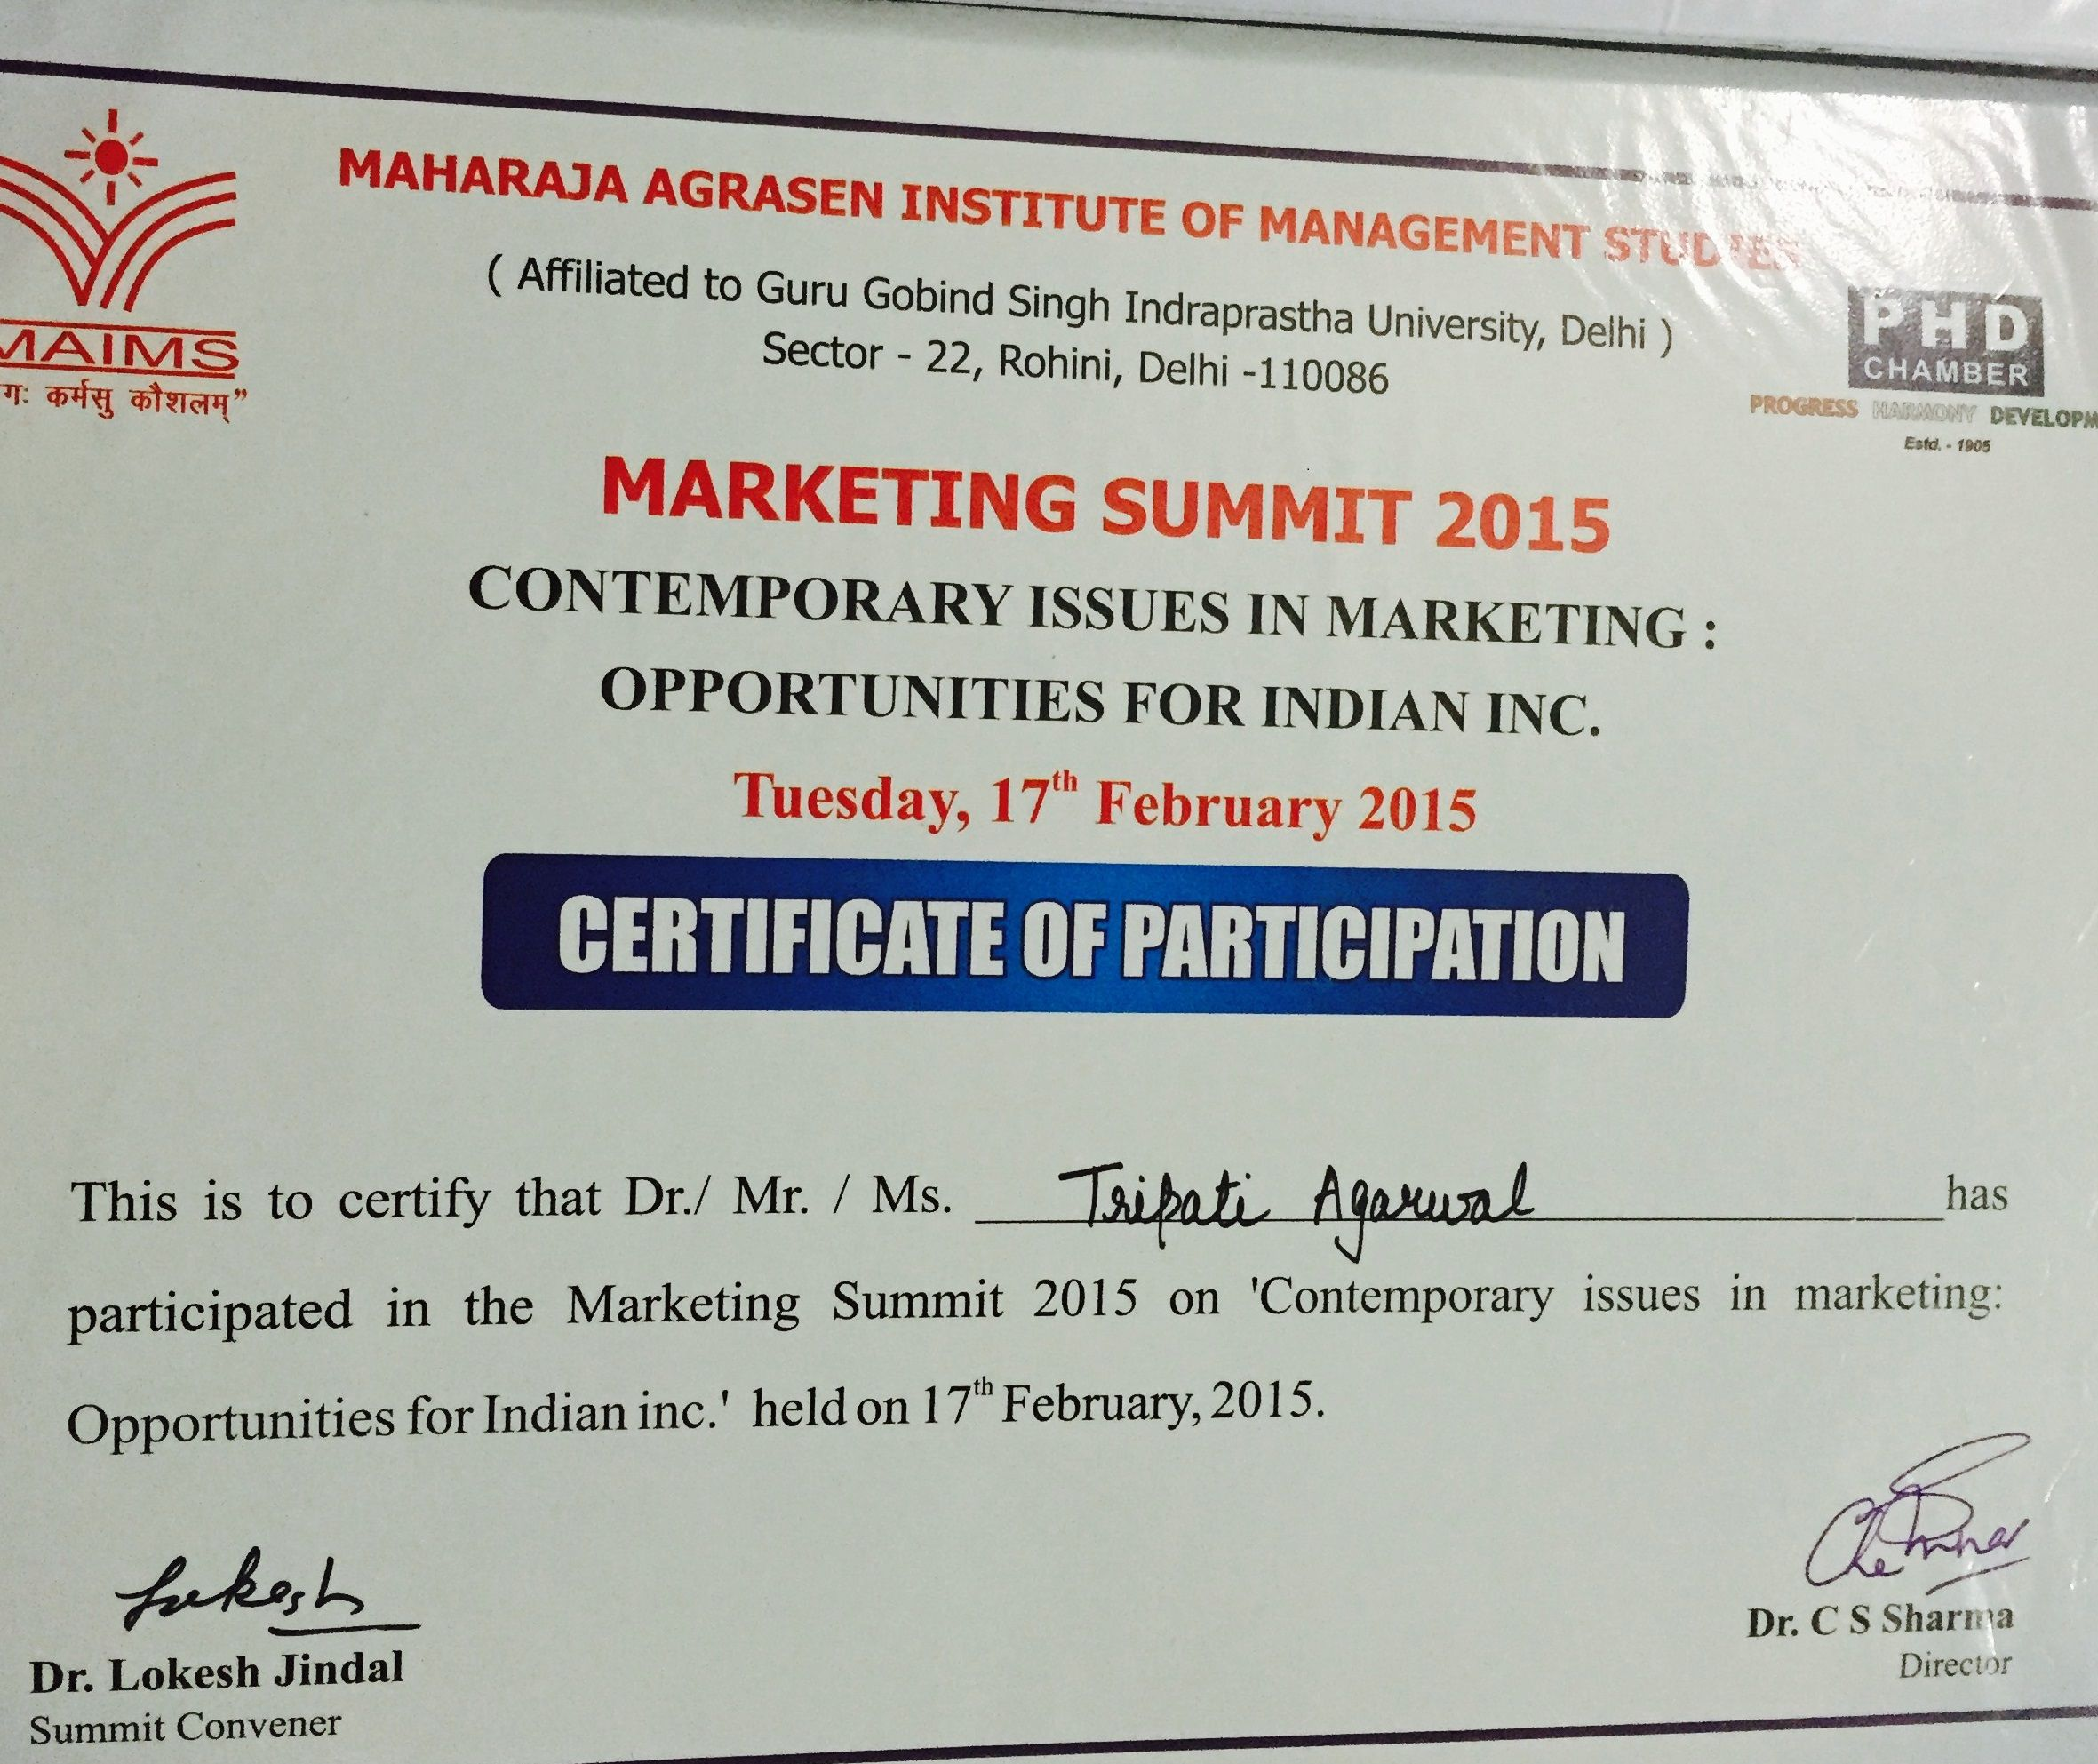 Participation Certificate In Marketing Summit 2015 Tripti Aggarwal